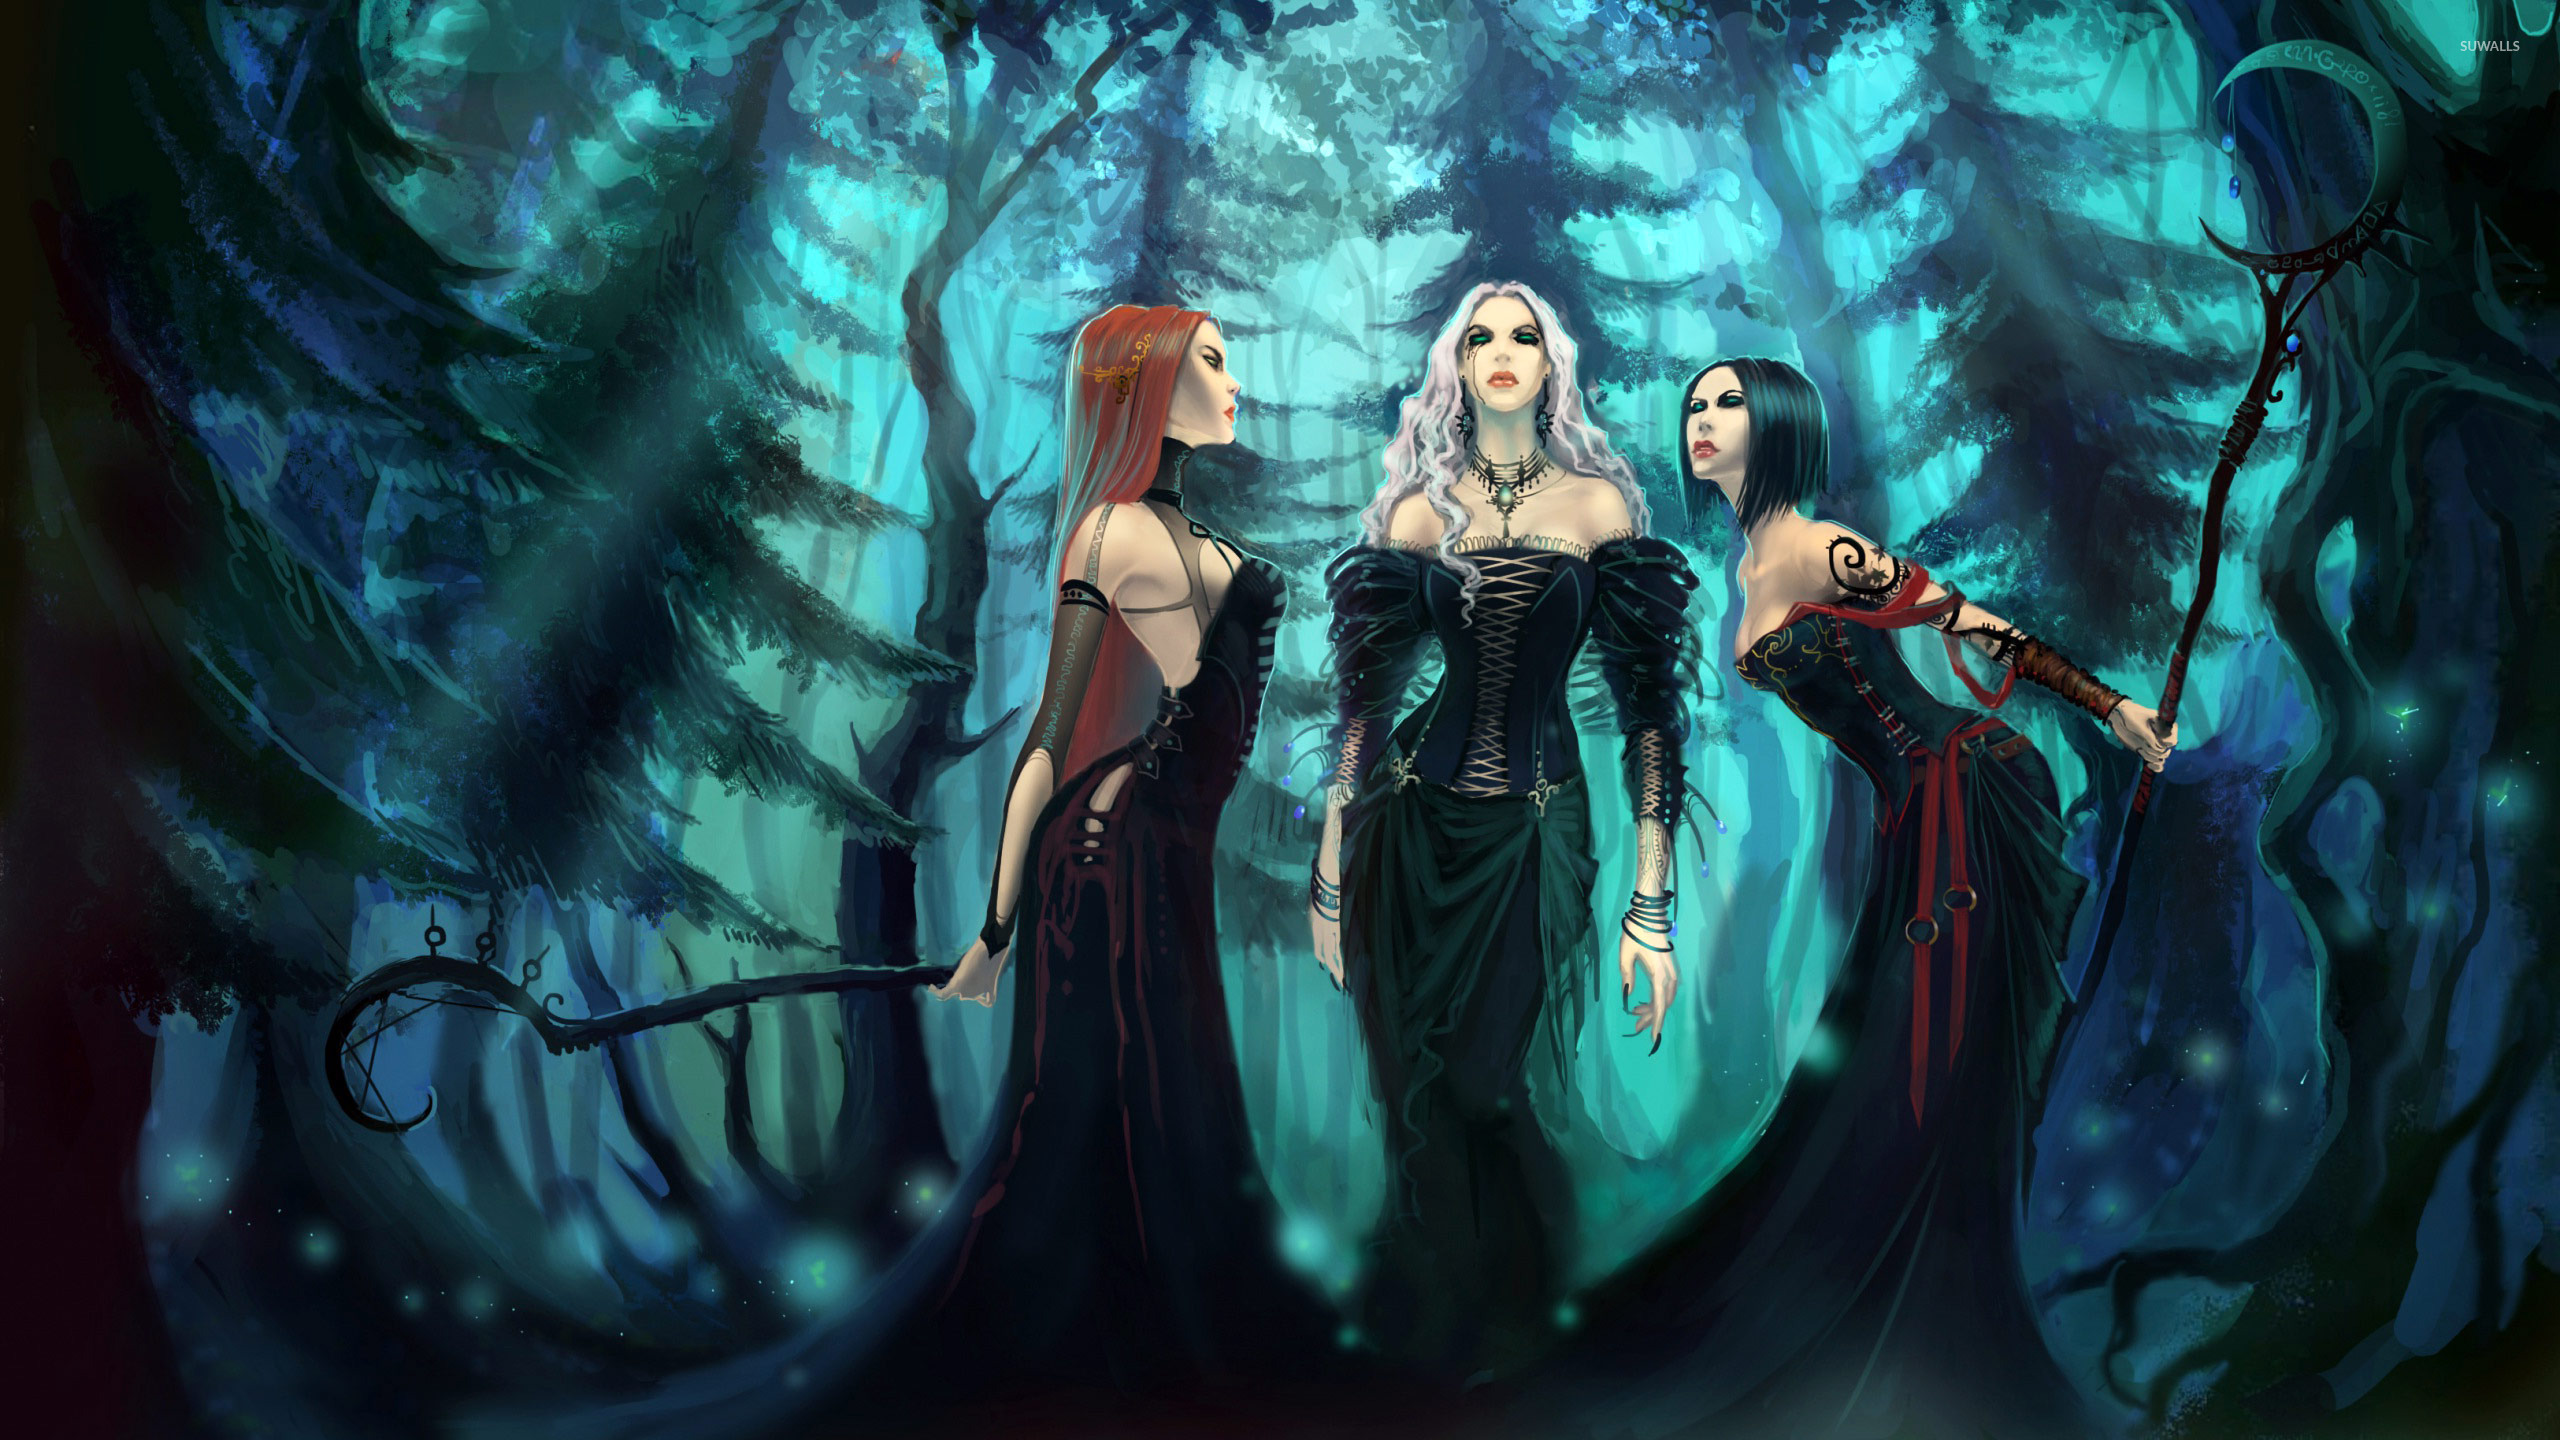 witches-in-the-forest-19944-2560x1440.jpg